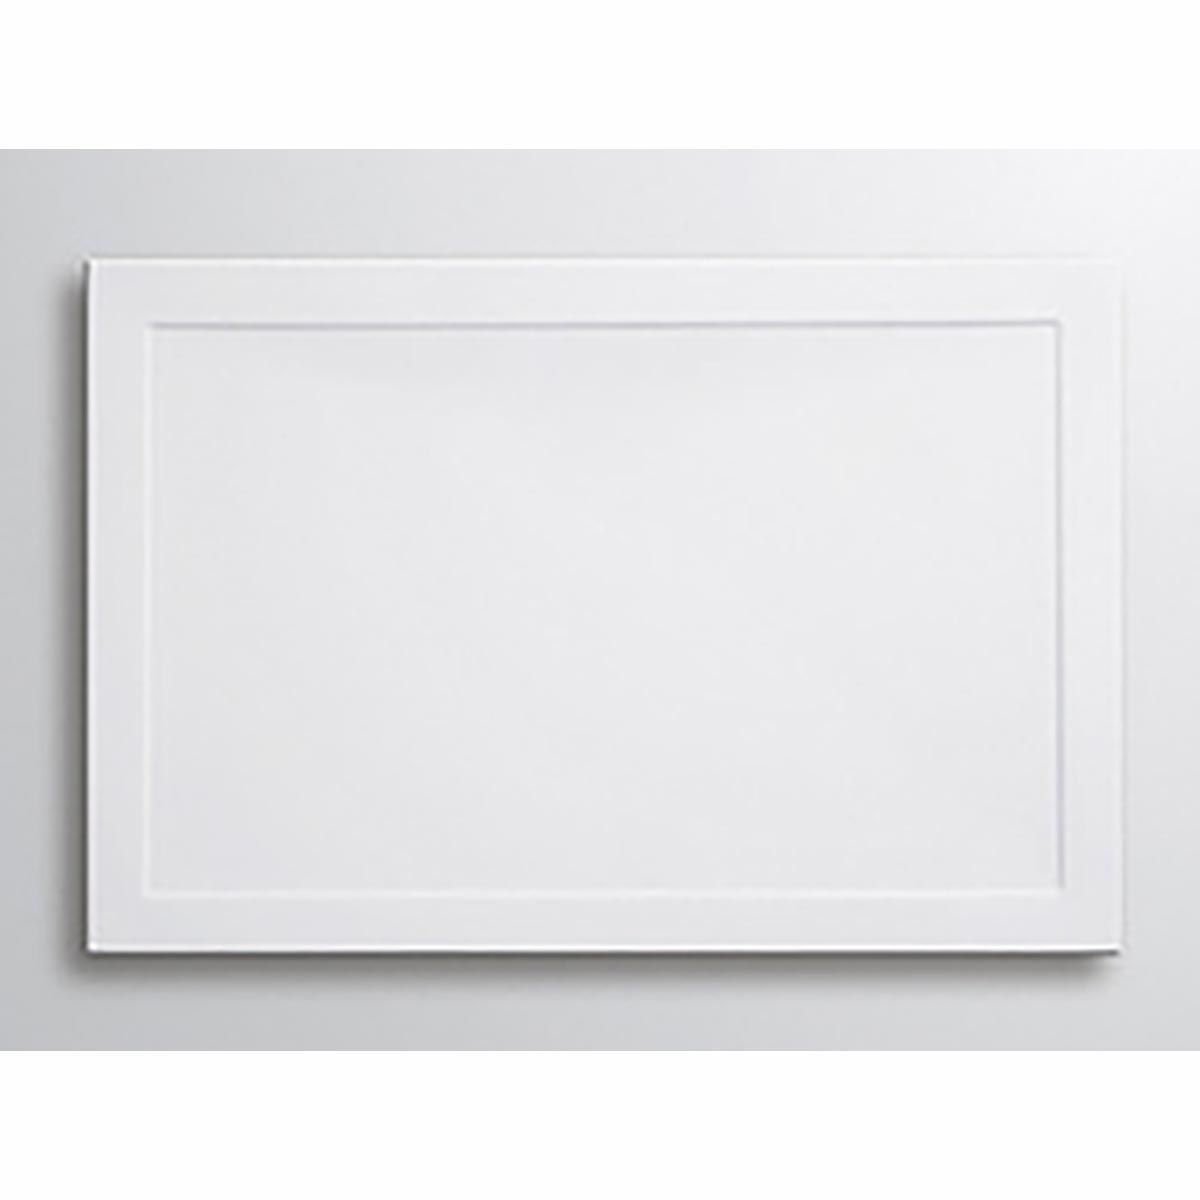 Lakes White Low Profile Rectangular ABS Tray 1800mm X 1000mm